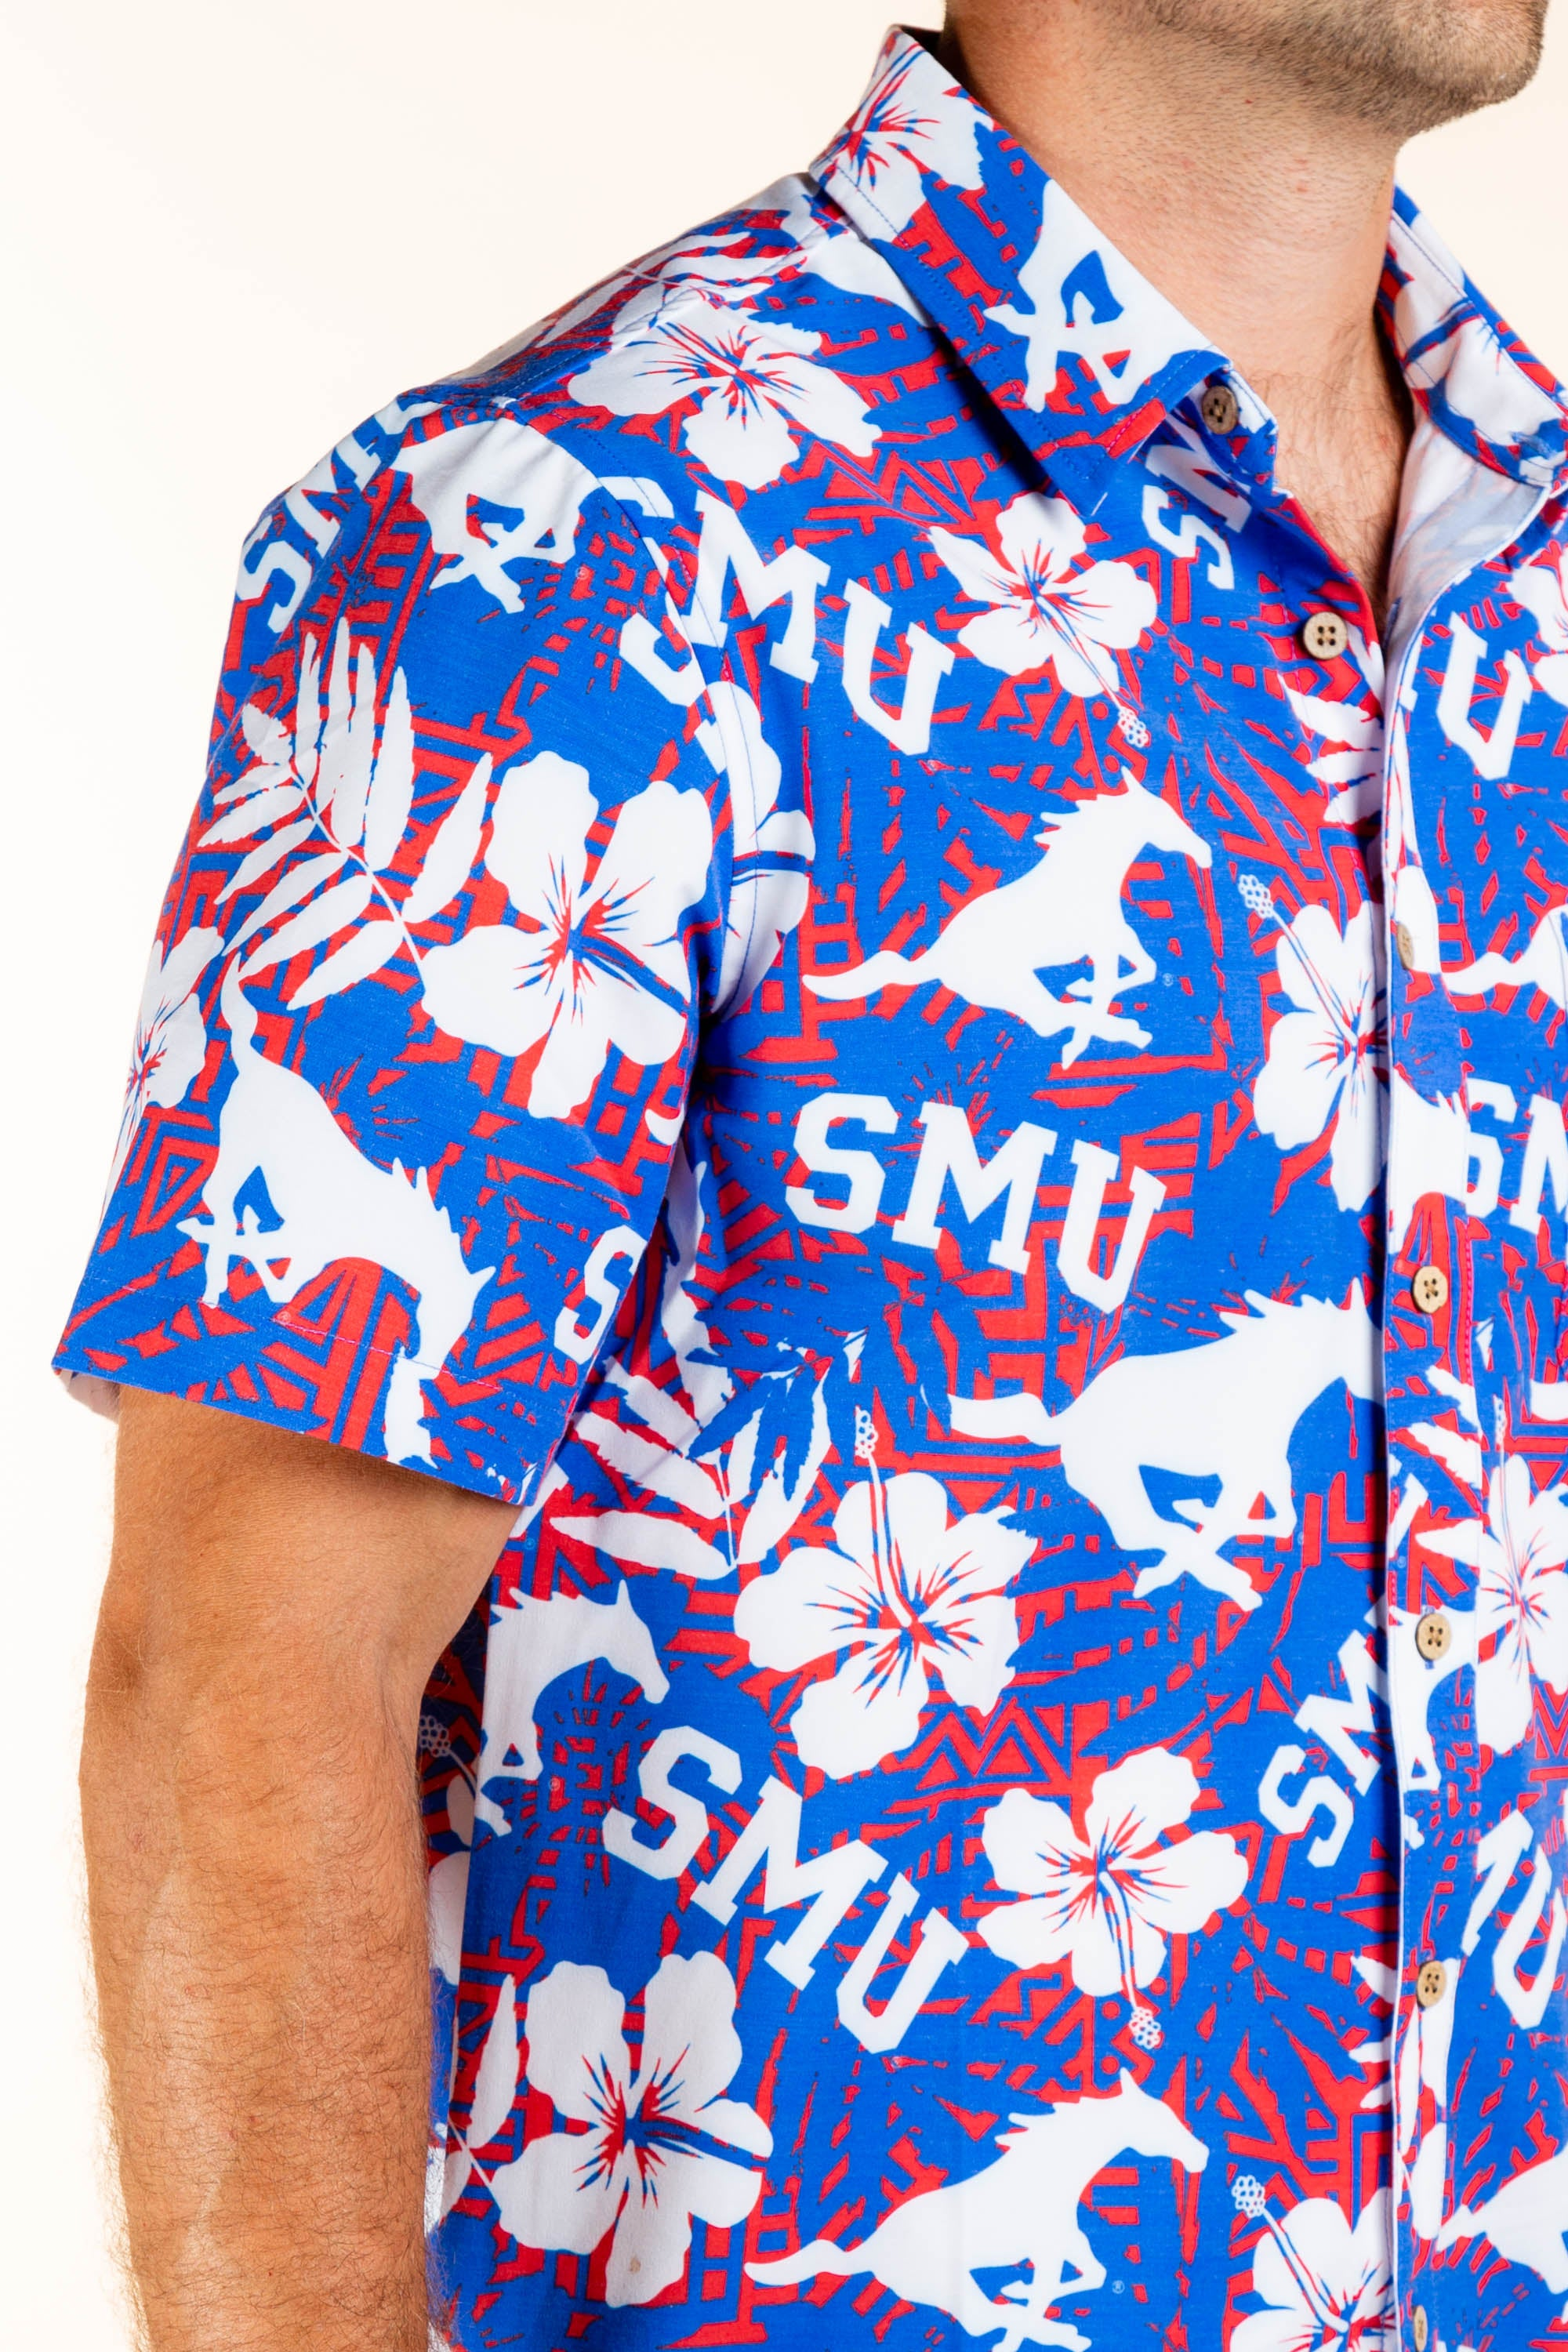 SMU Tailgating Shirt